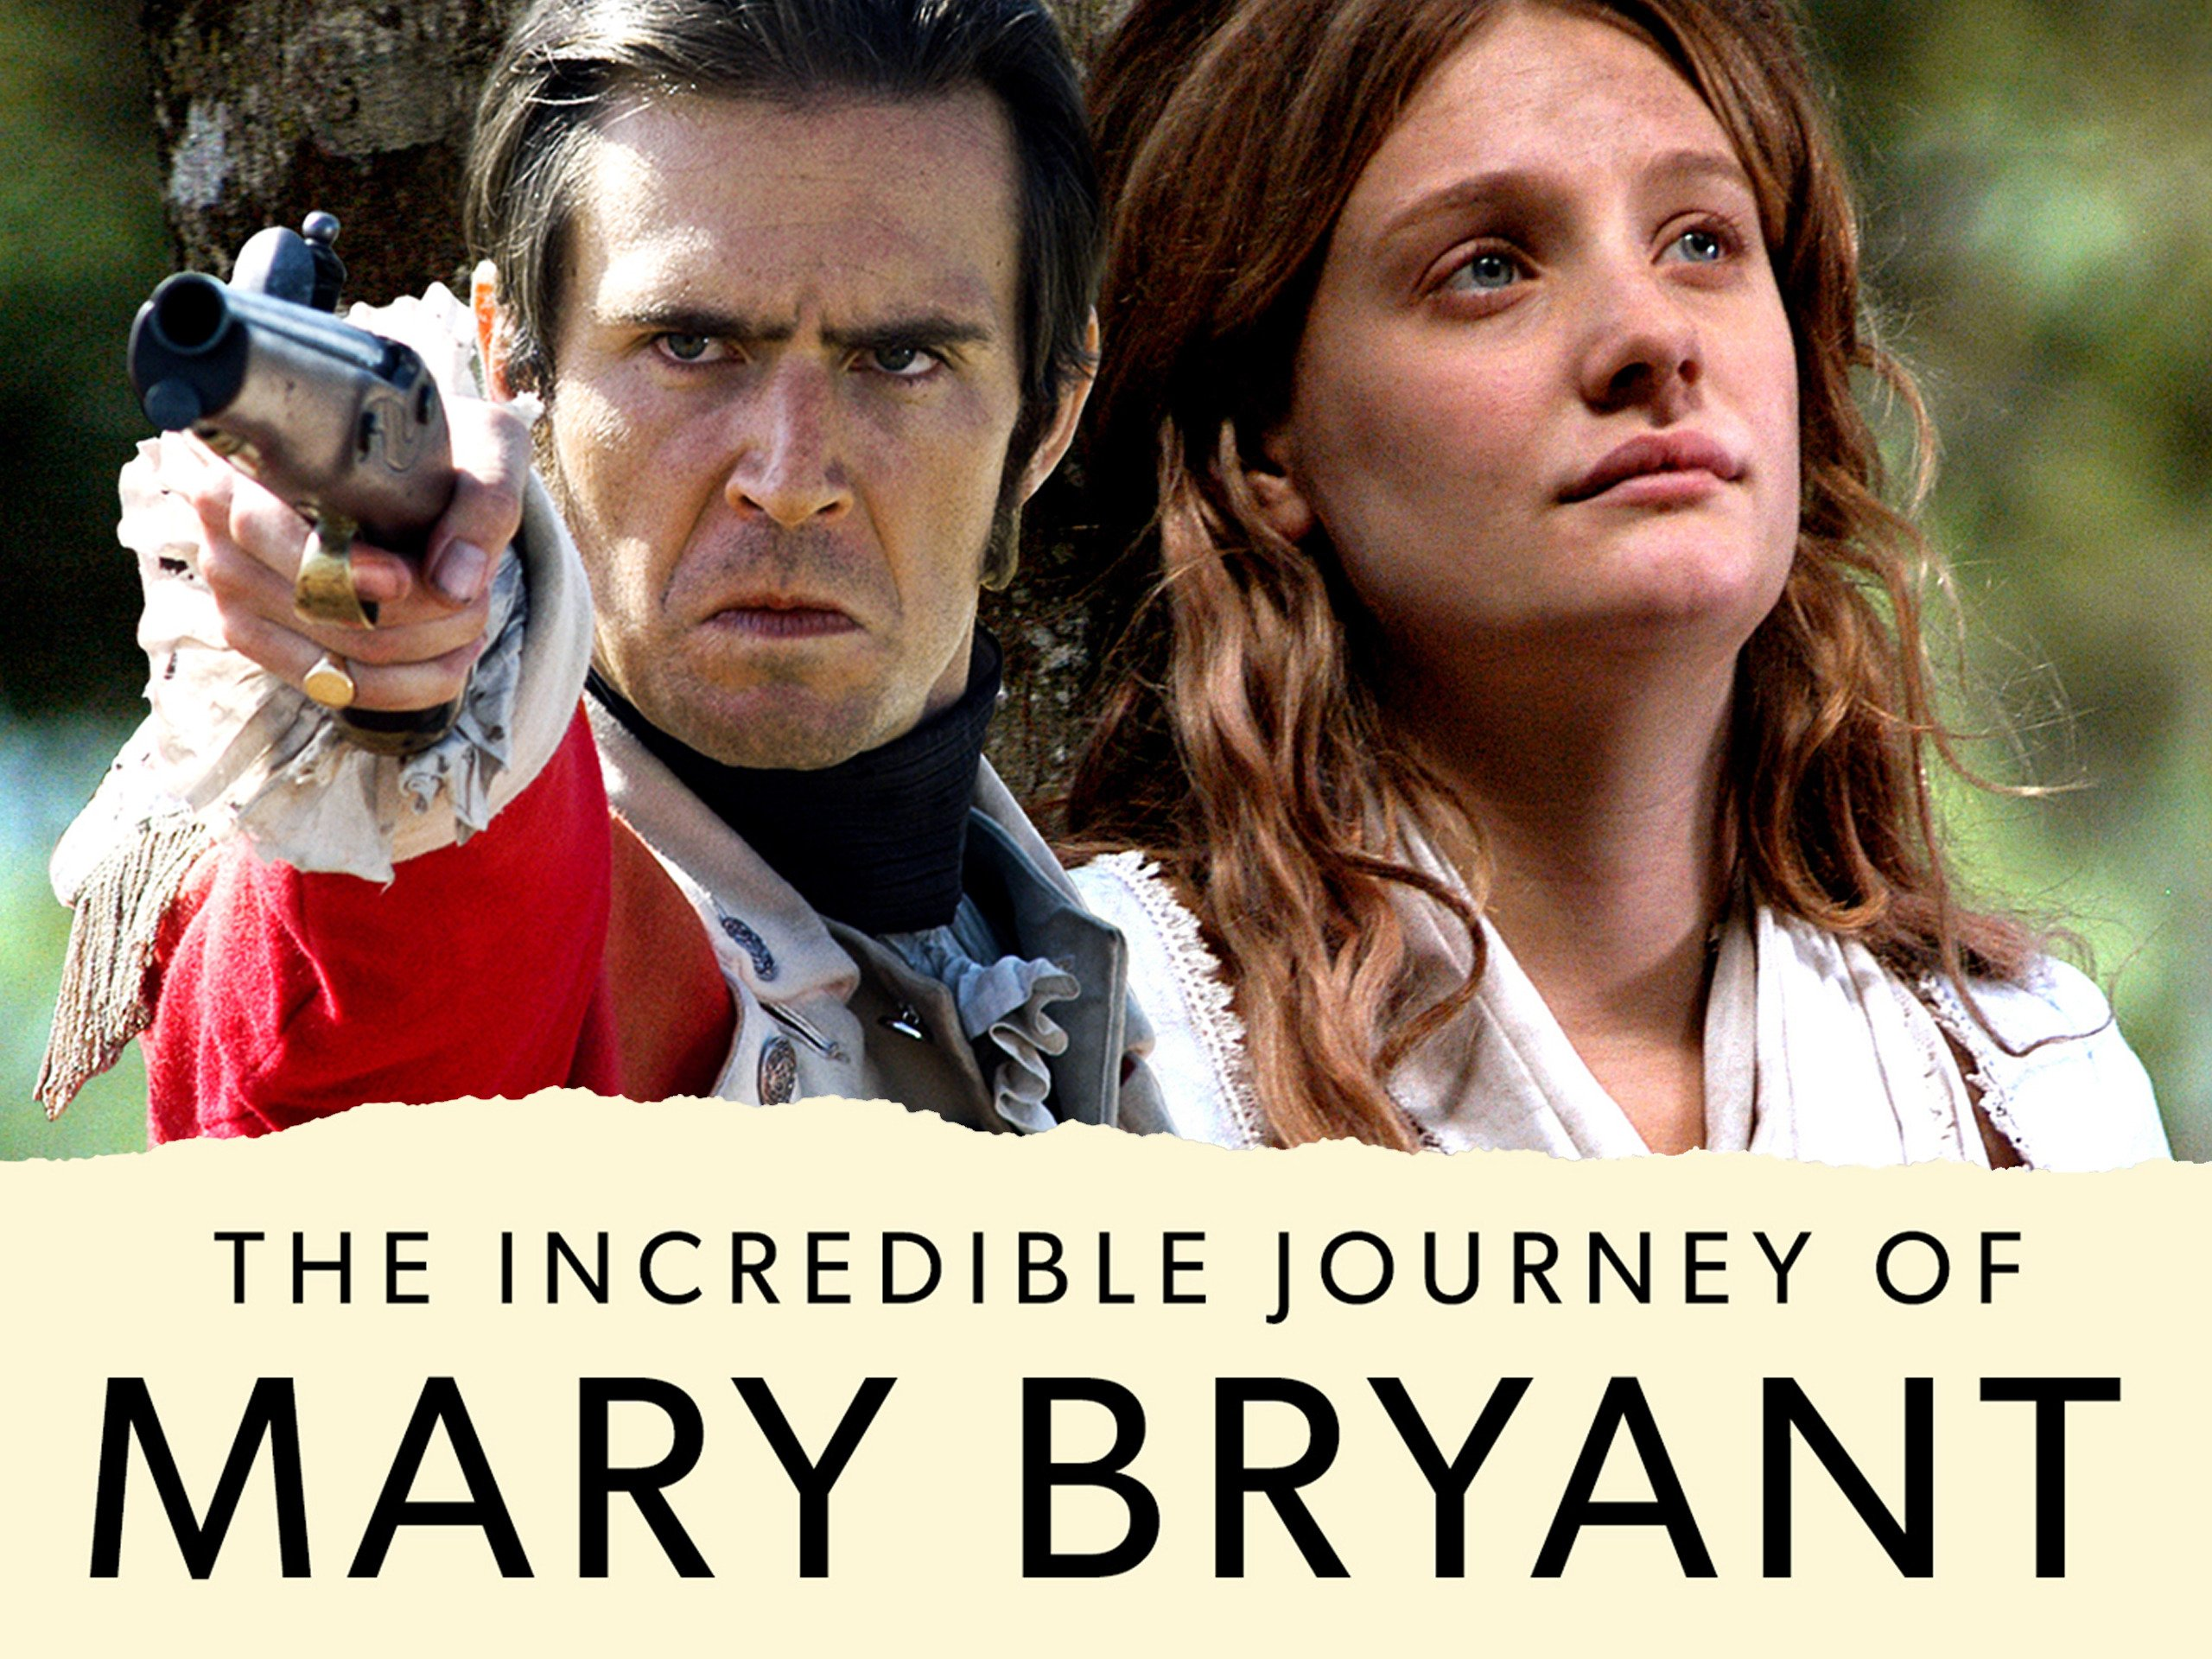 the incredible journey of mary bryant season 2